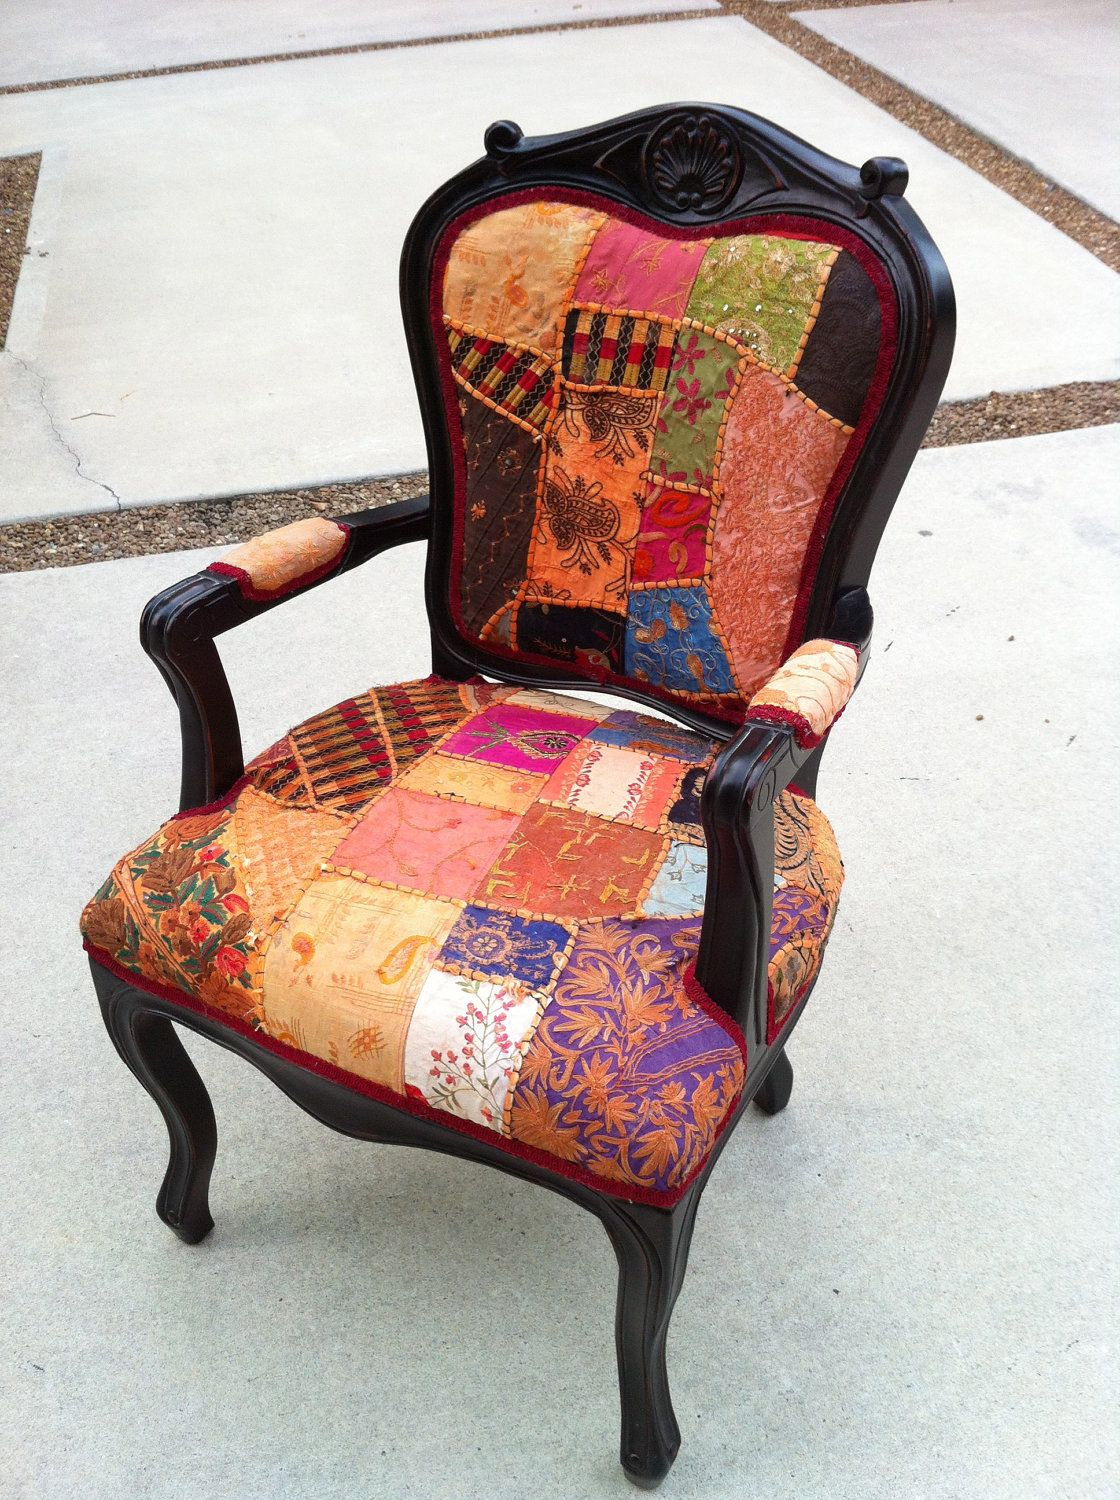 Fab Boho Chic Accent Arm Chair From LemonAIDER On Etsy Come Sit A Spell P